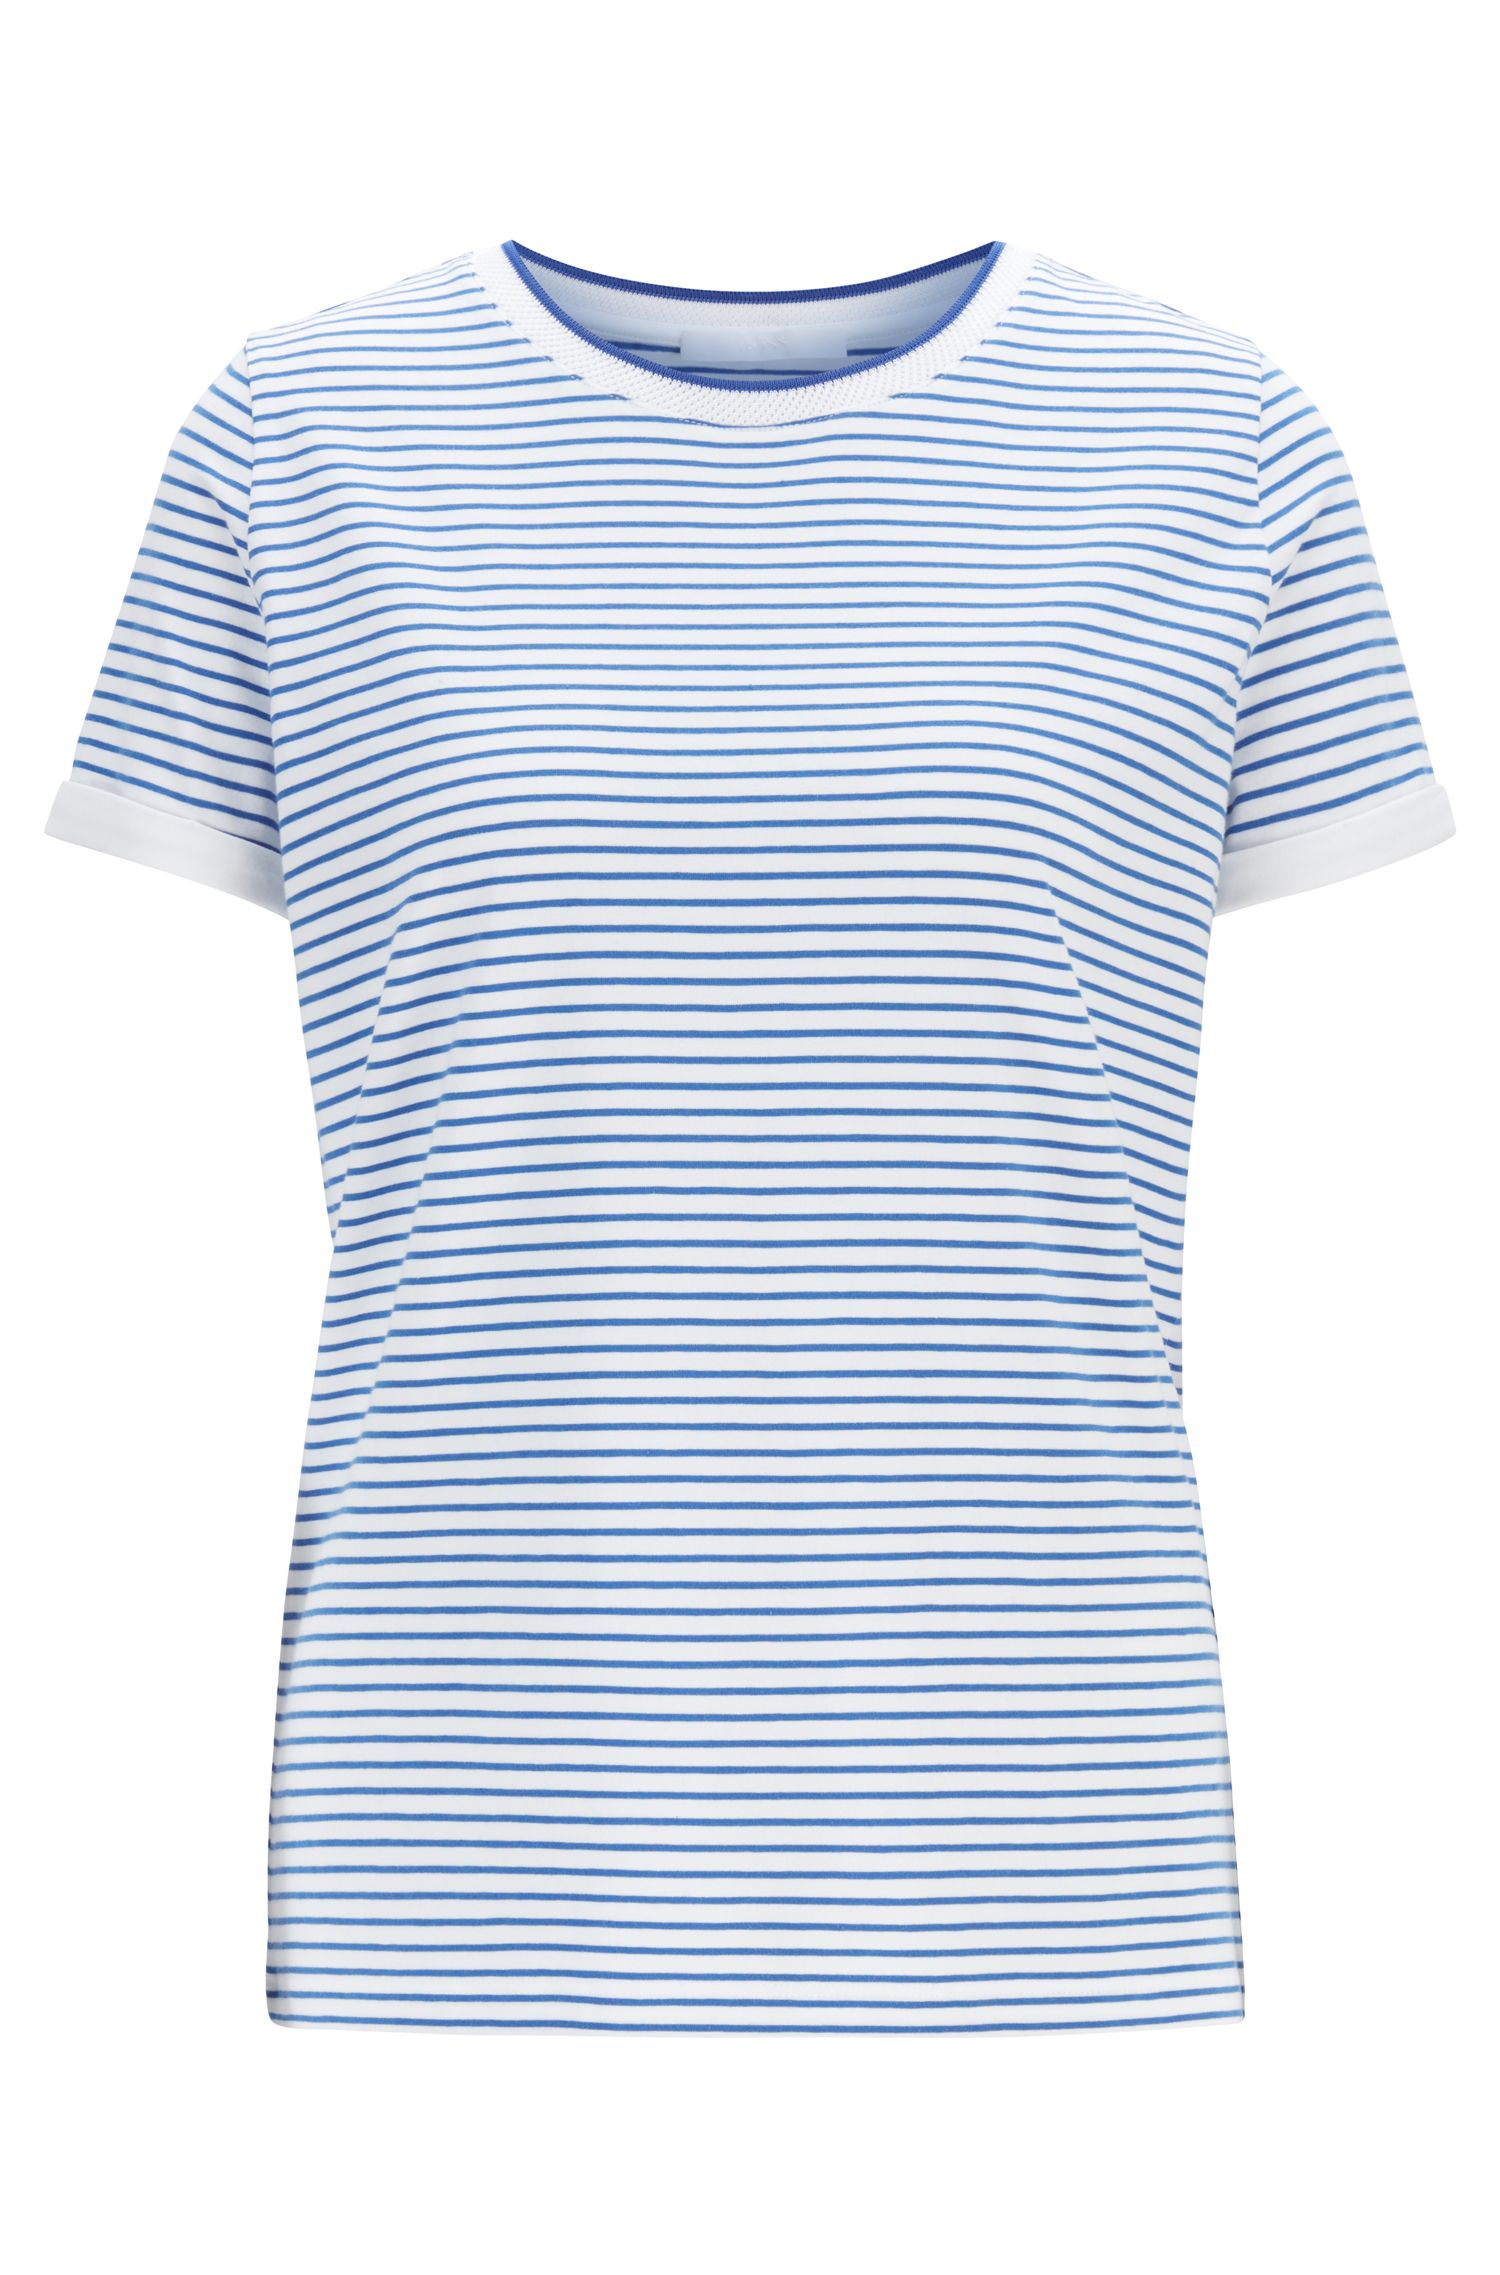 Striped T-shirt in stretch fabric with mesh neckline, Patterned